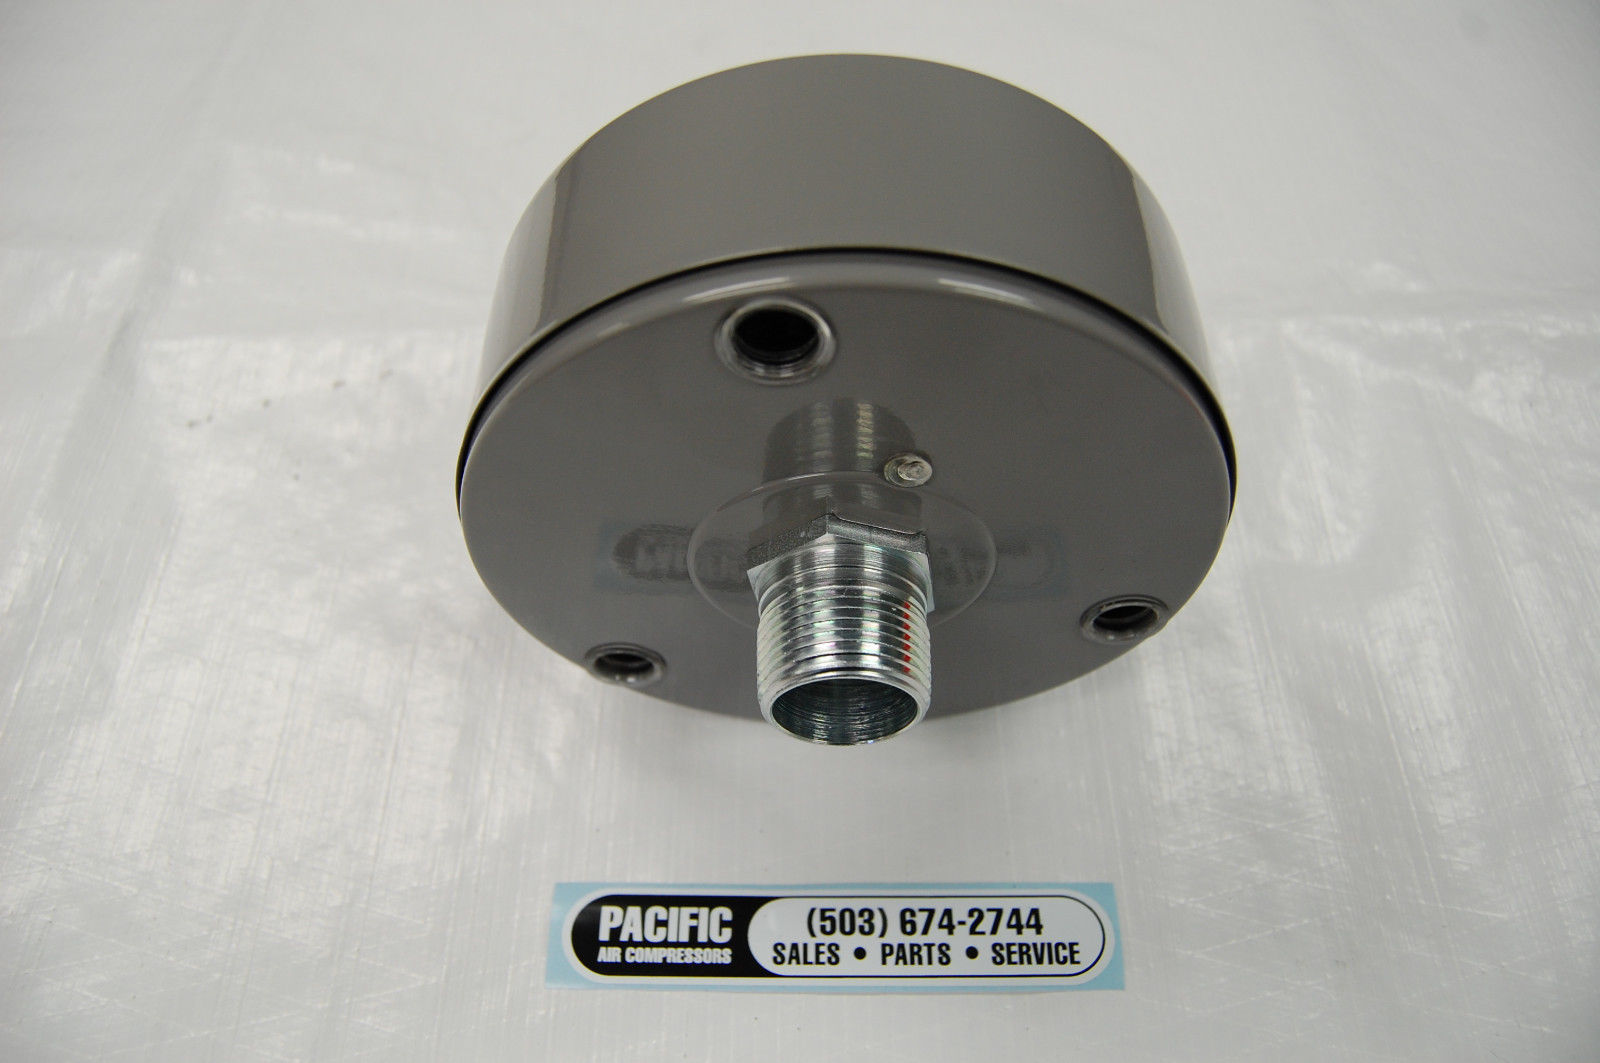 32170953 Ingersoll Rand Filter Silencer 1 Quot For 2340 2475